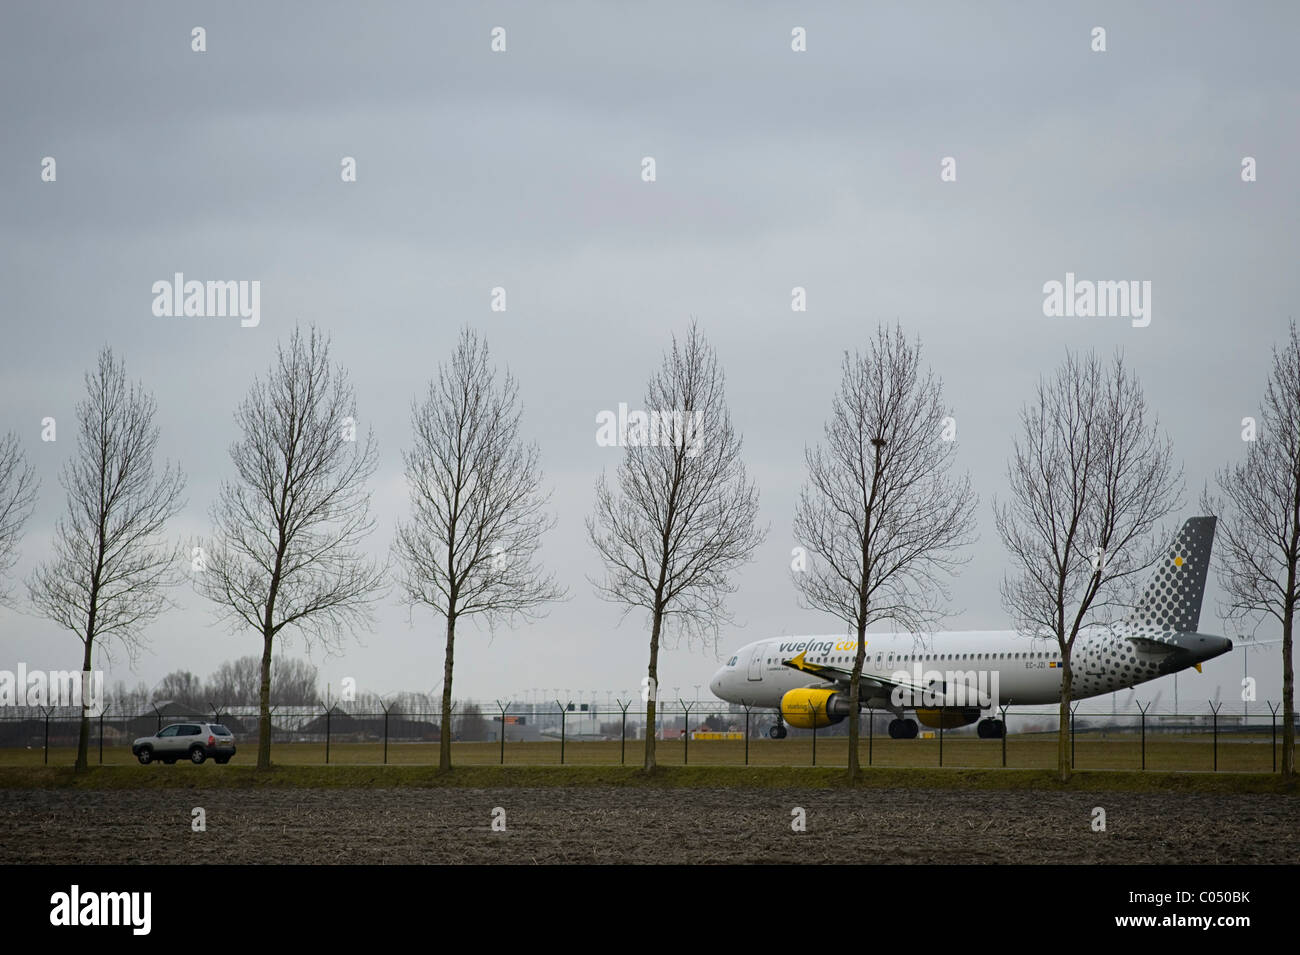 Airplane taxiing alongside car at Schiphol Airport Amsterdam - Stock Image